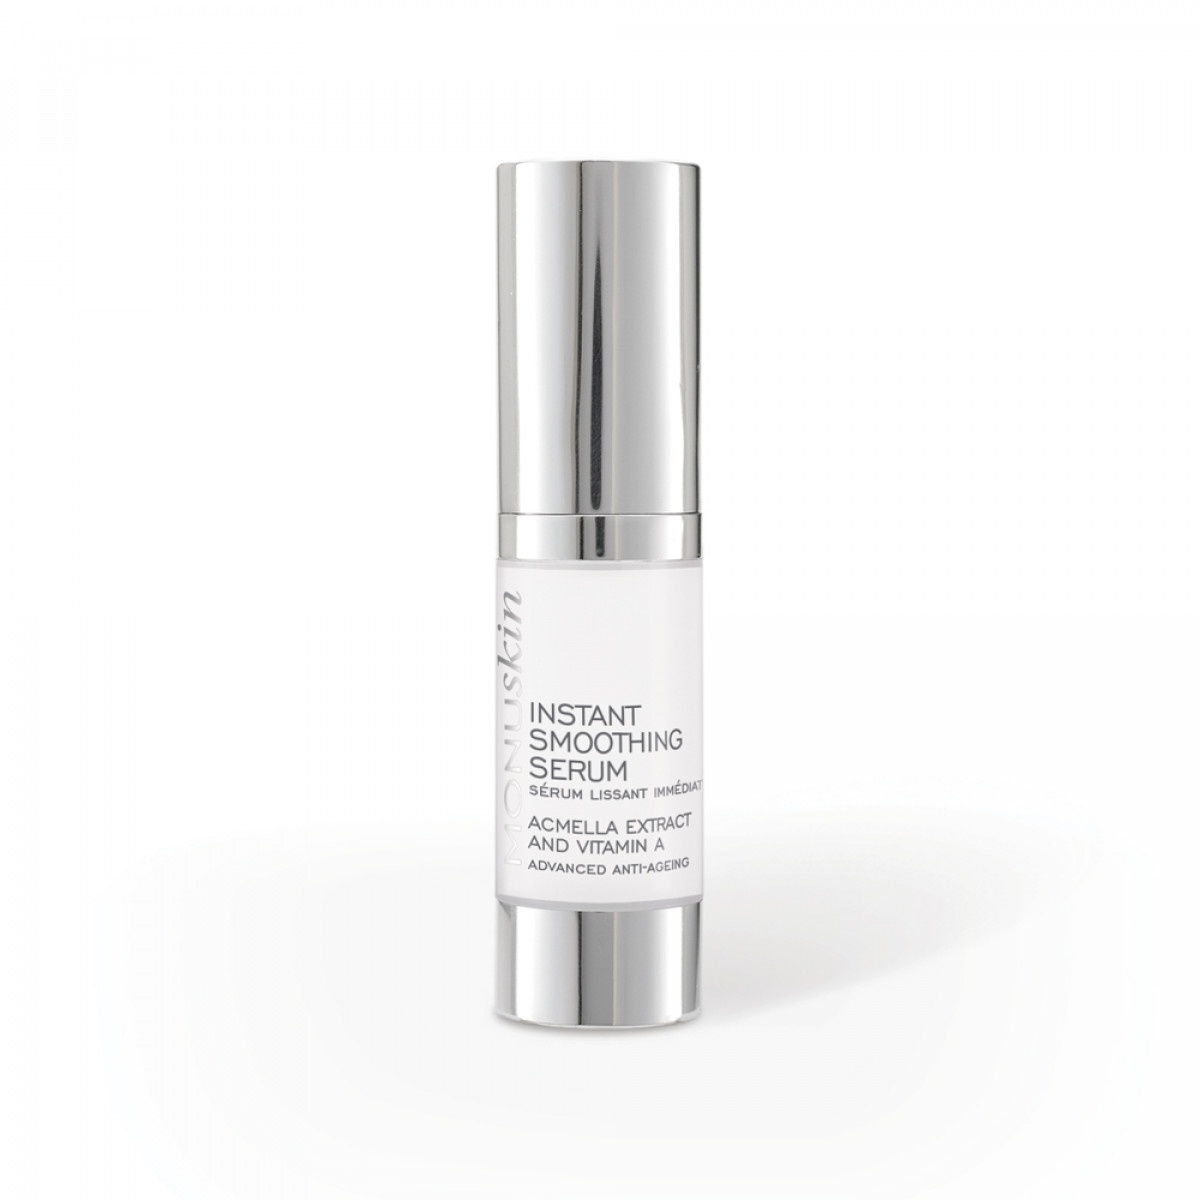 Monu Instant Smoothing Serum